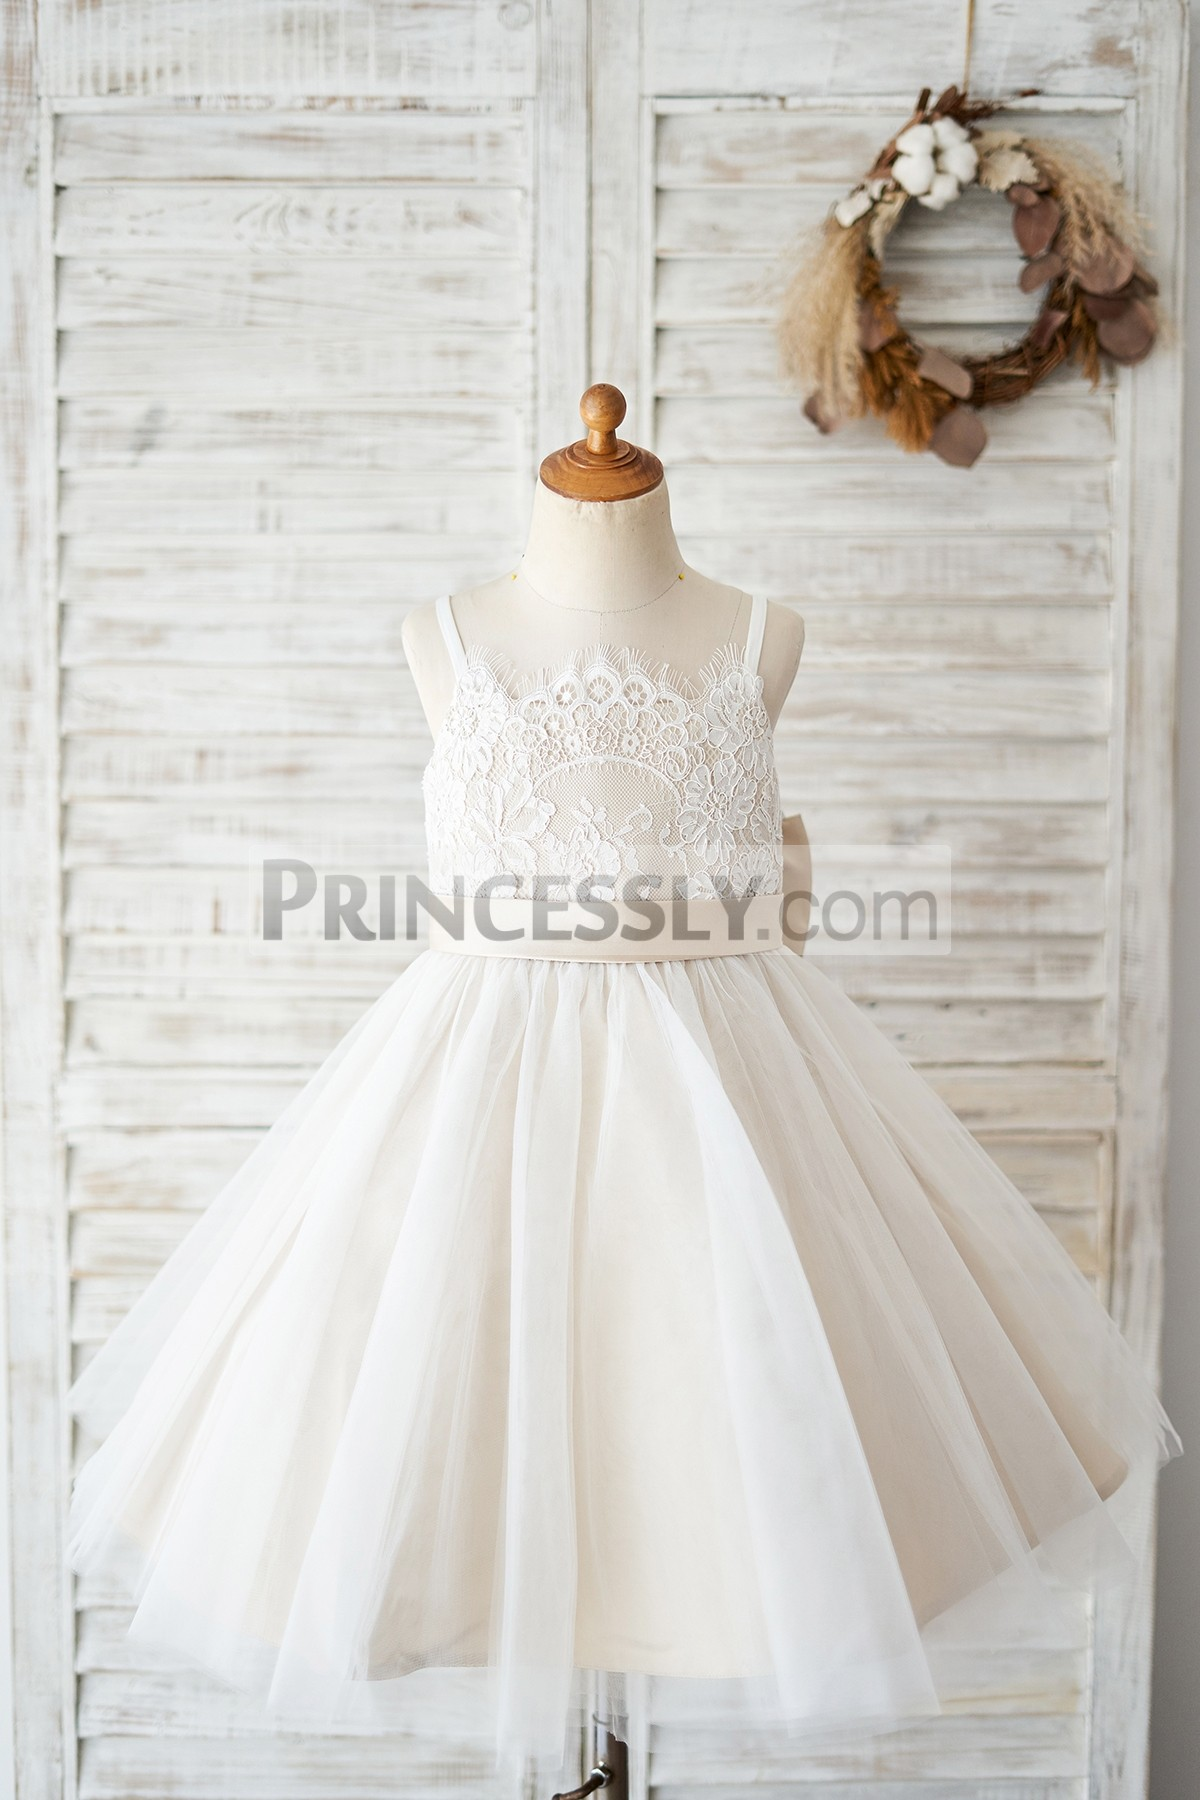 Princessly.com-K1004036 Spaghetti Straps Ivory Lace Tulle Wedding Flower Girl Dress with Champagne Lining-31